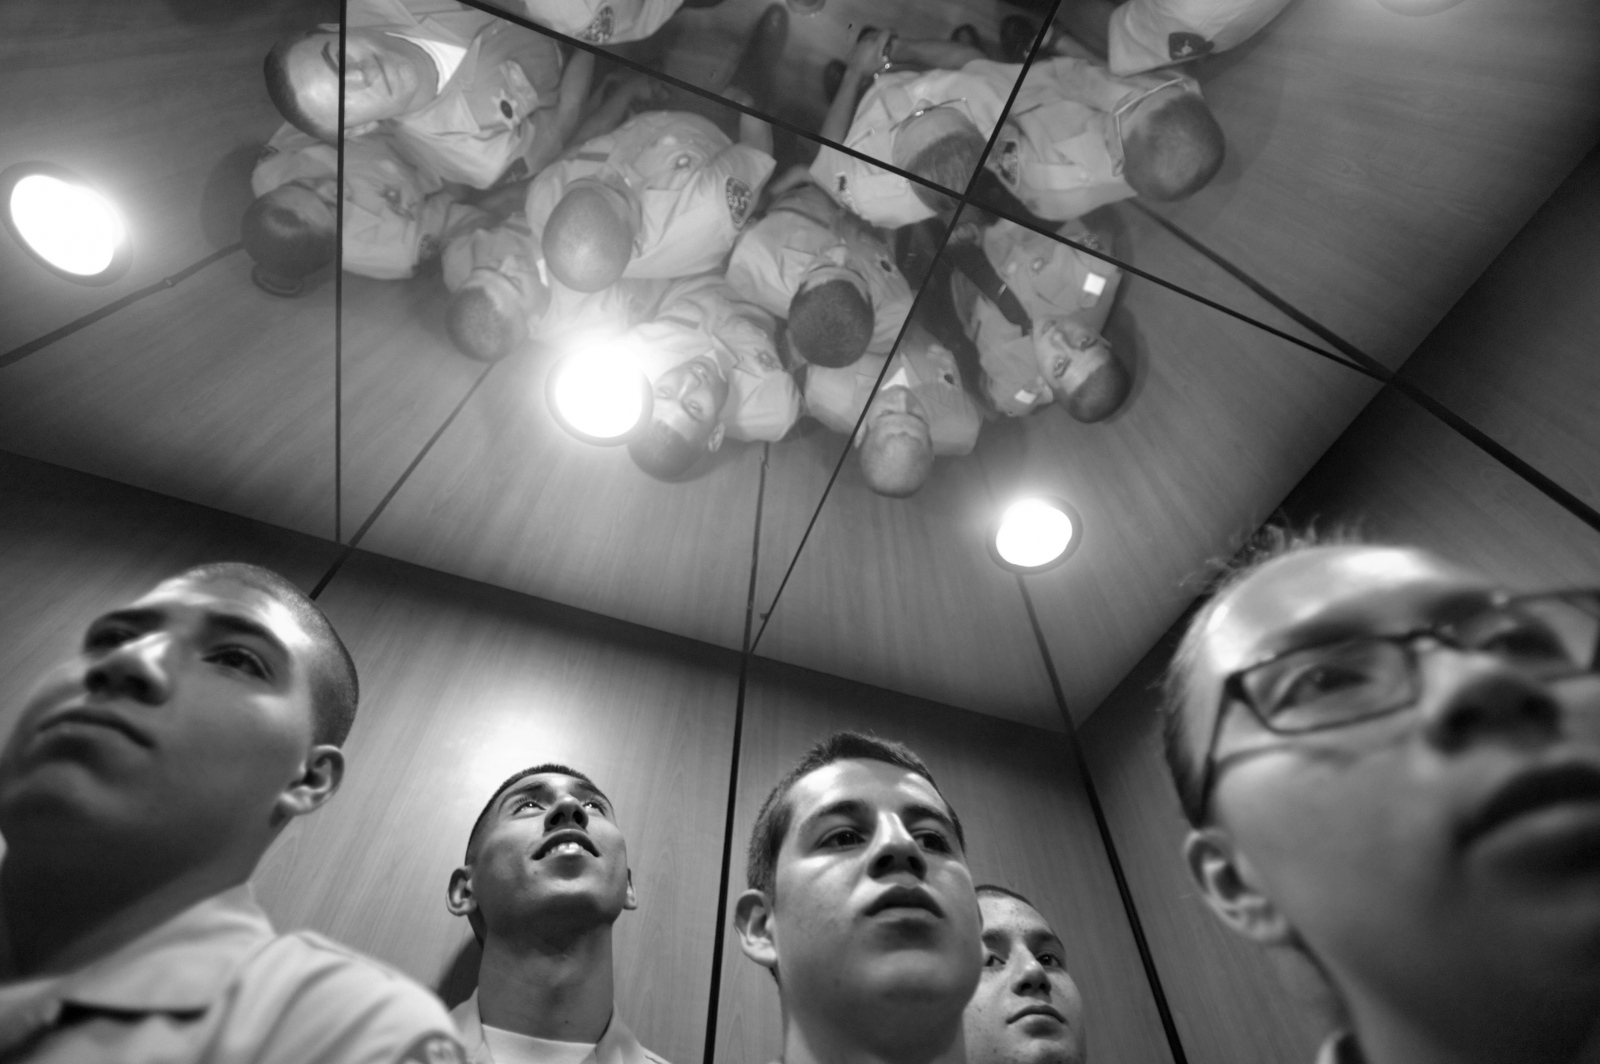 A group of Explorers recruits gather in an elevator at the Reagan Library in Simi Valley during a tour and history lesson on Nov. 22, 2014.